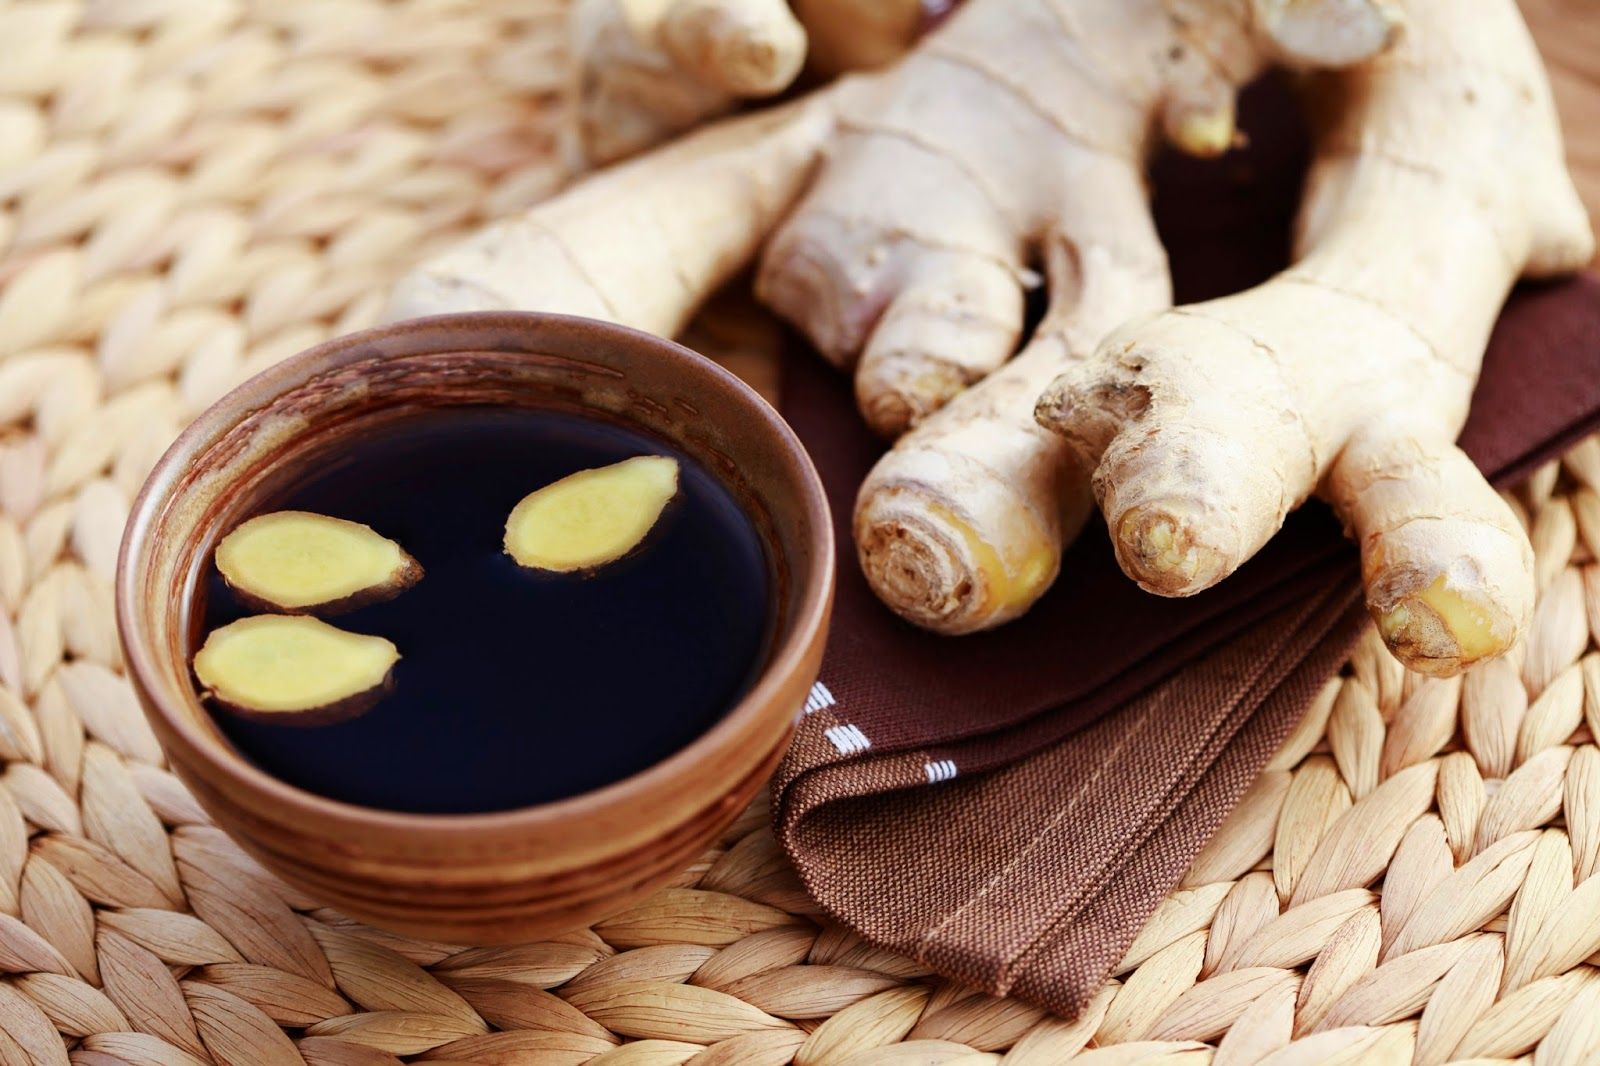 ginger - The Best Home Remedies